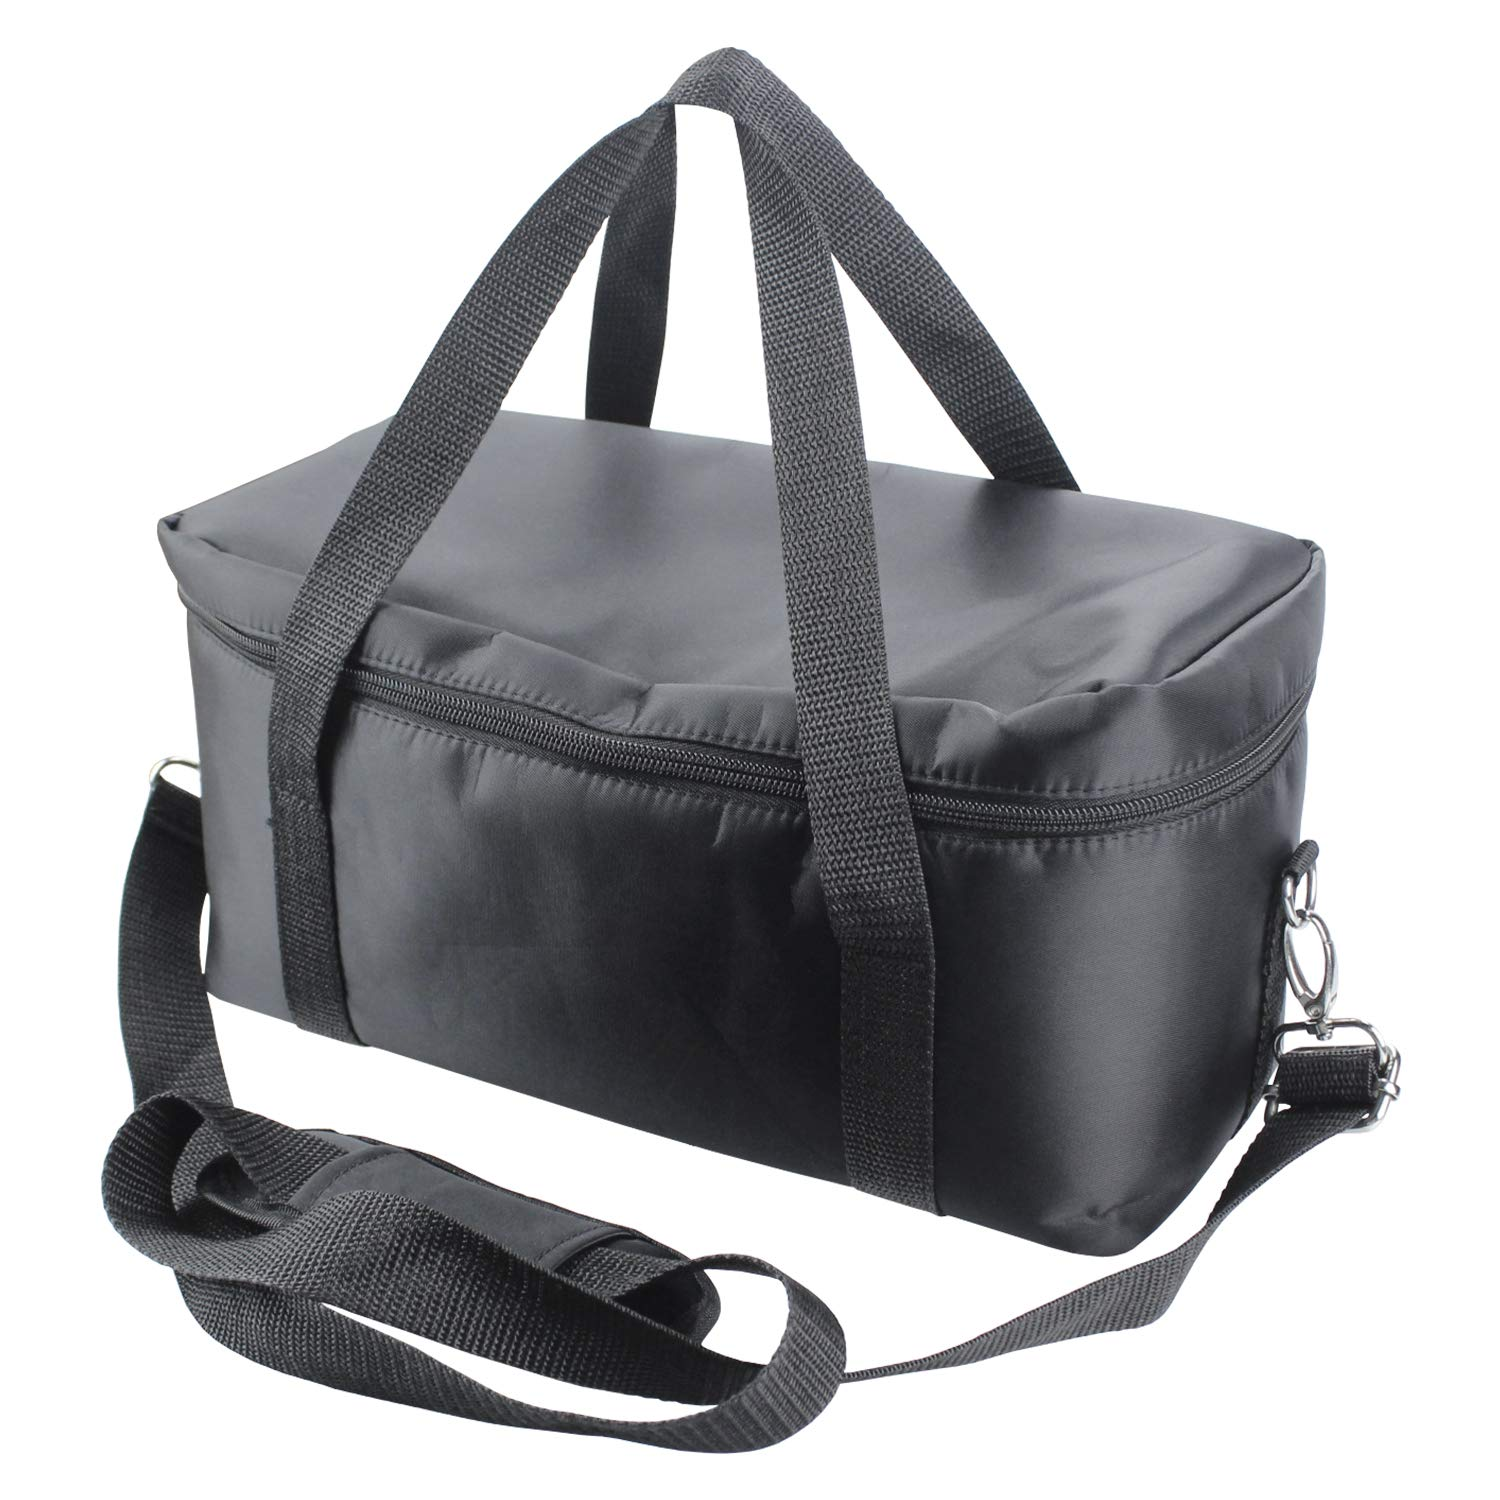 EasyFocus Foldable Tool Bag for Outdoor Camping, Traveling and The Portable Generators of Chafon, Suaoki and Rockpals etc.